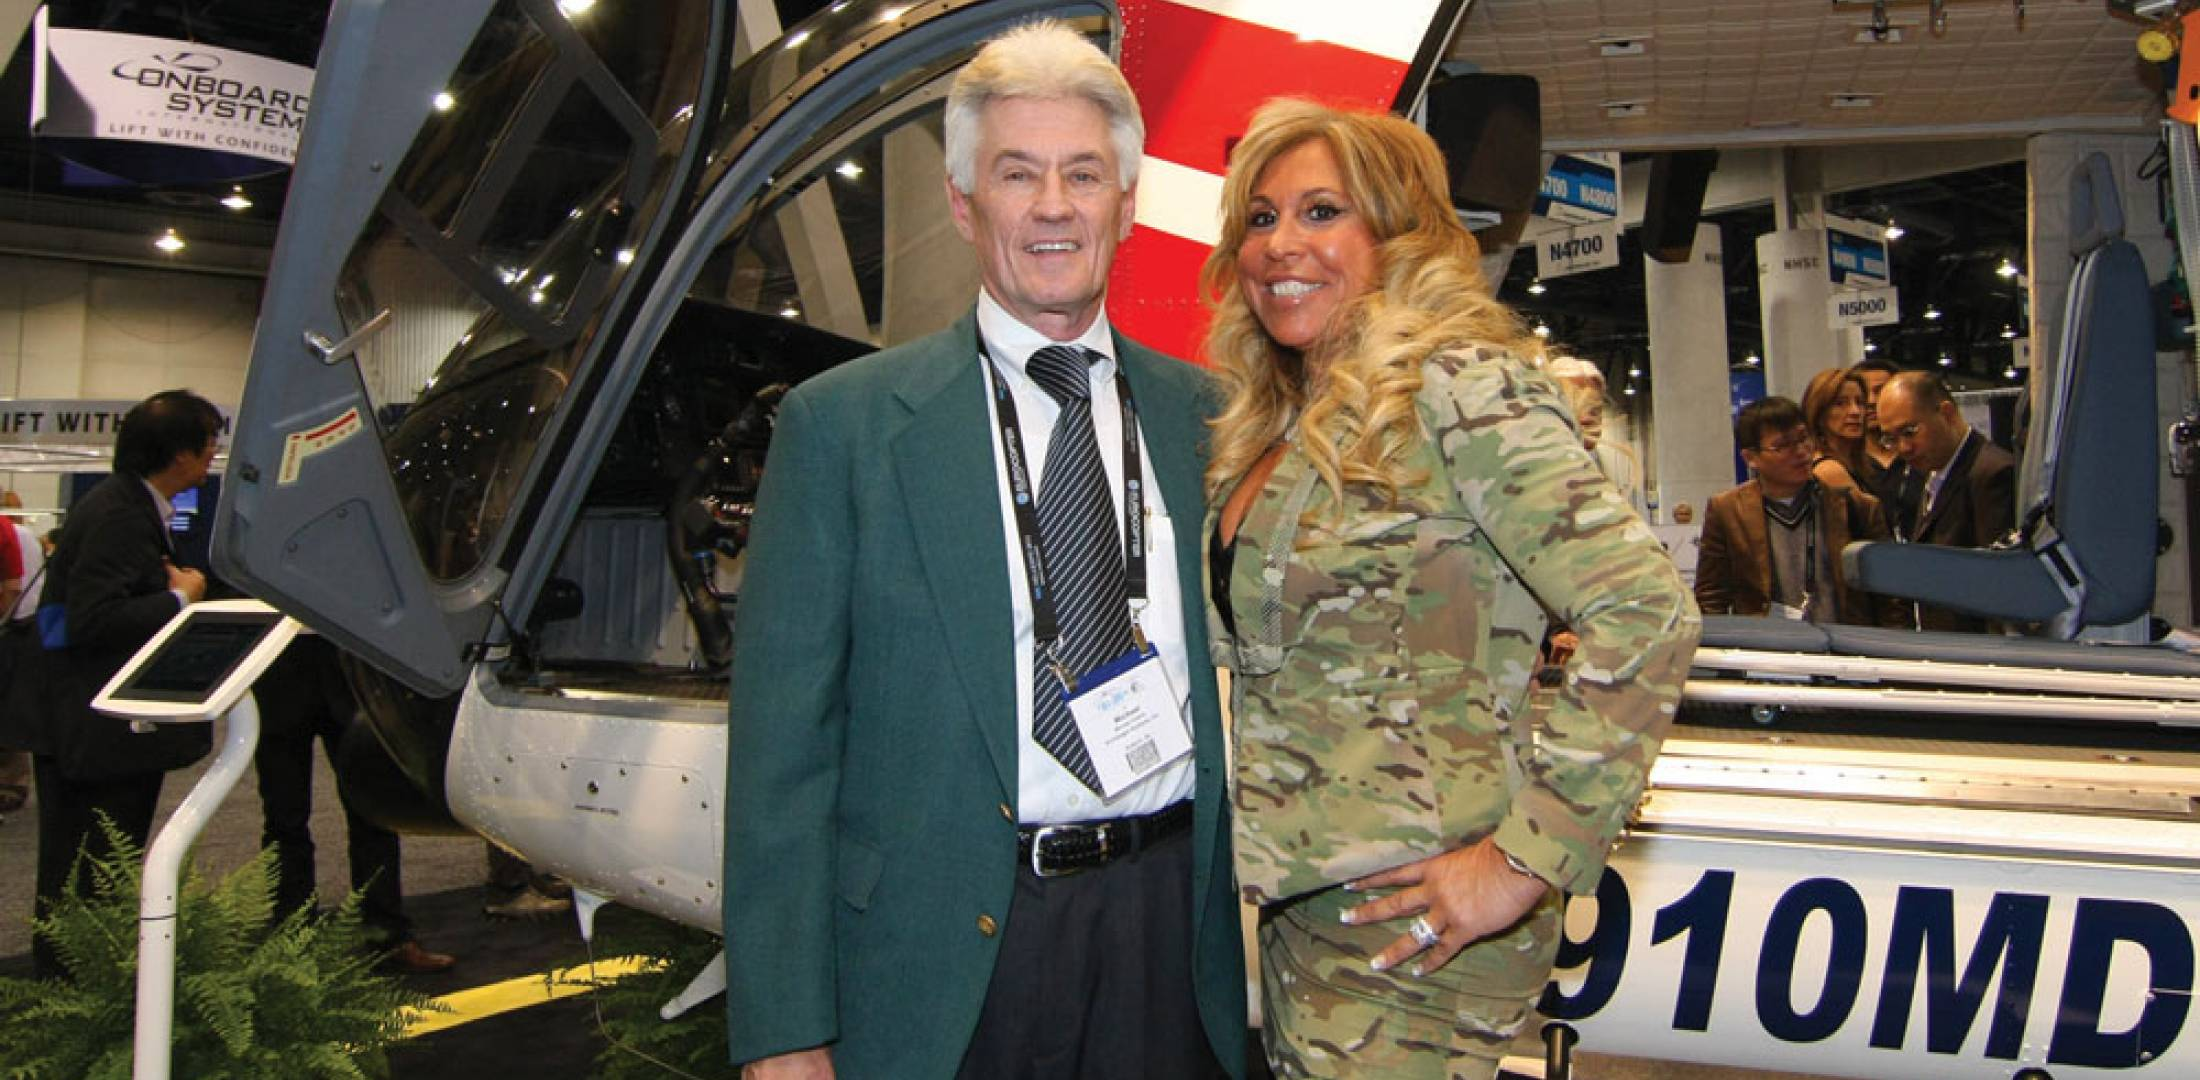 Michael Greene, CEO of  Archangel Systems, with Lynn Tilton, CEO of MD Helicopters, whose MD Explorer will use Archangel's ADAHRS in its Universal Avionics flight deck.